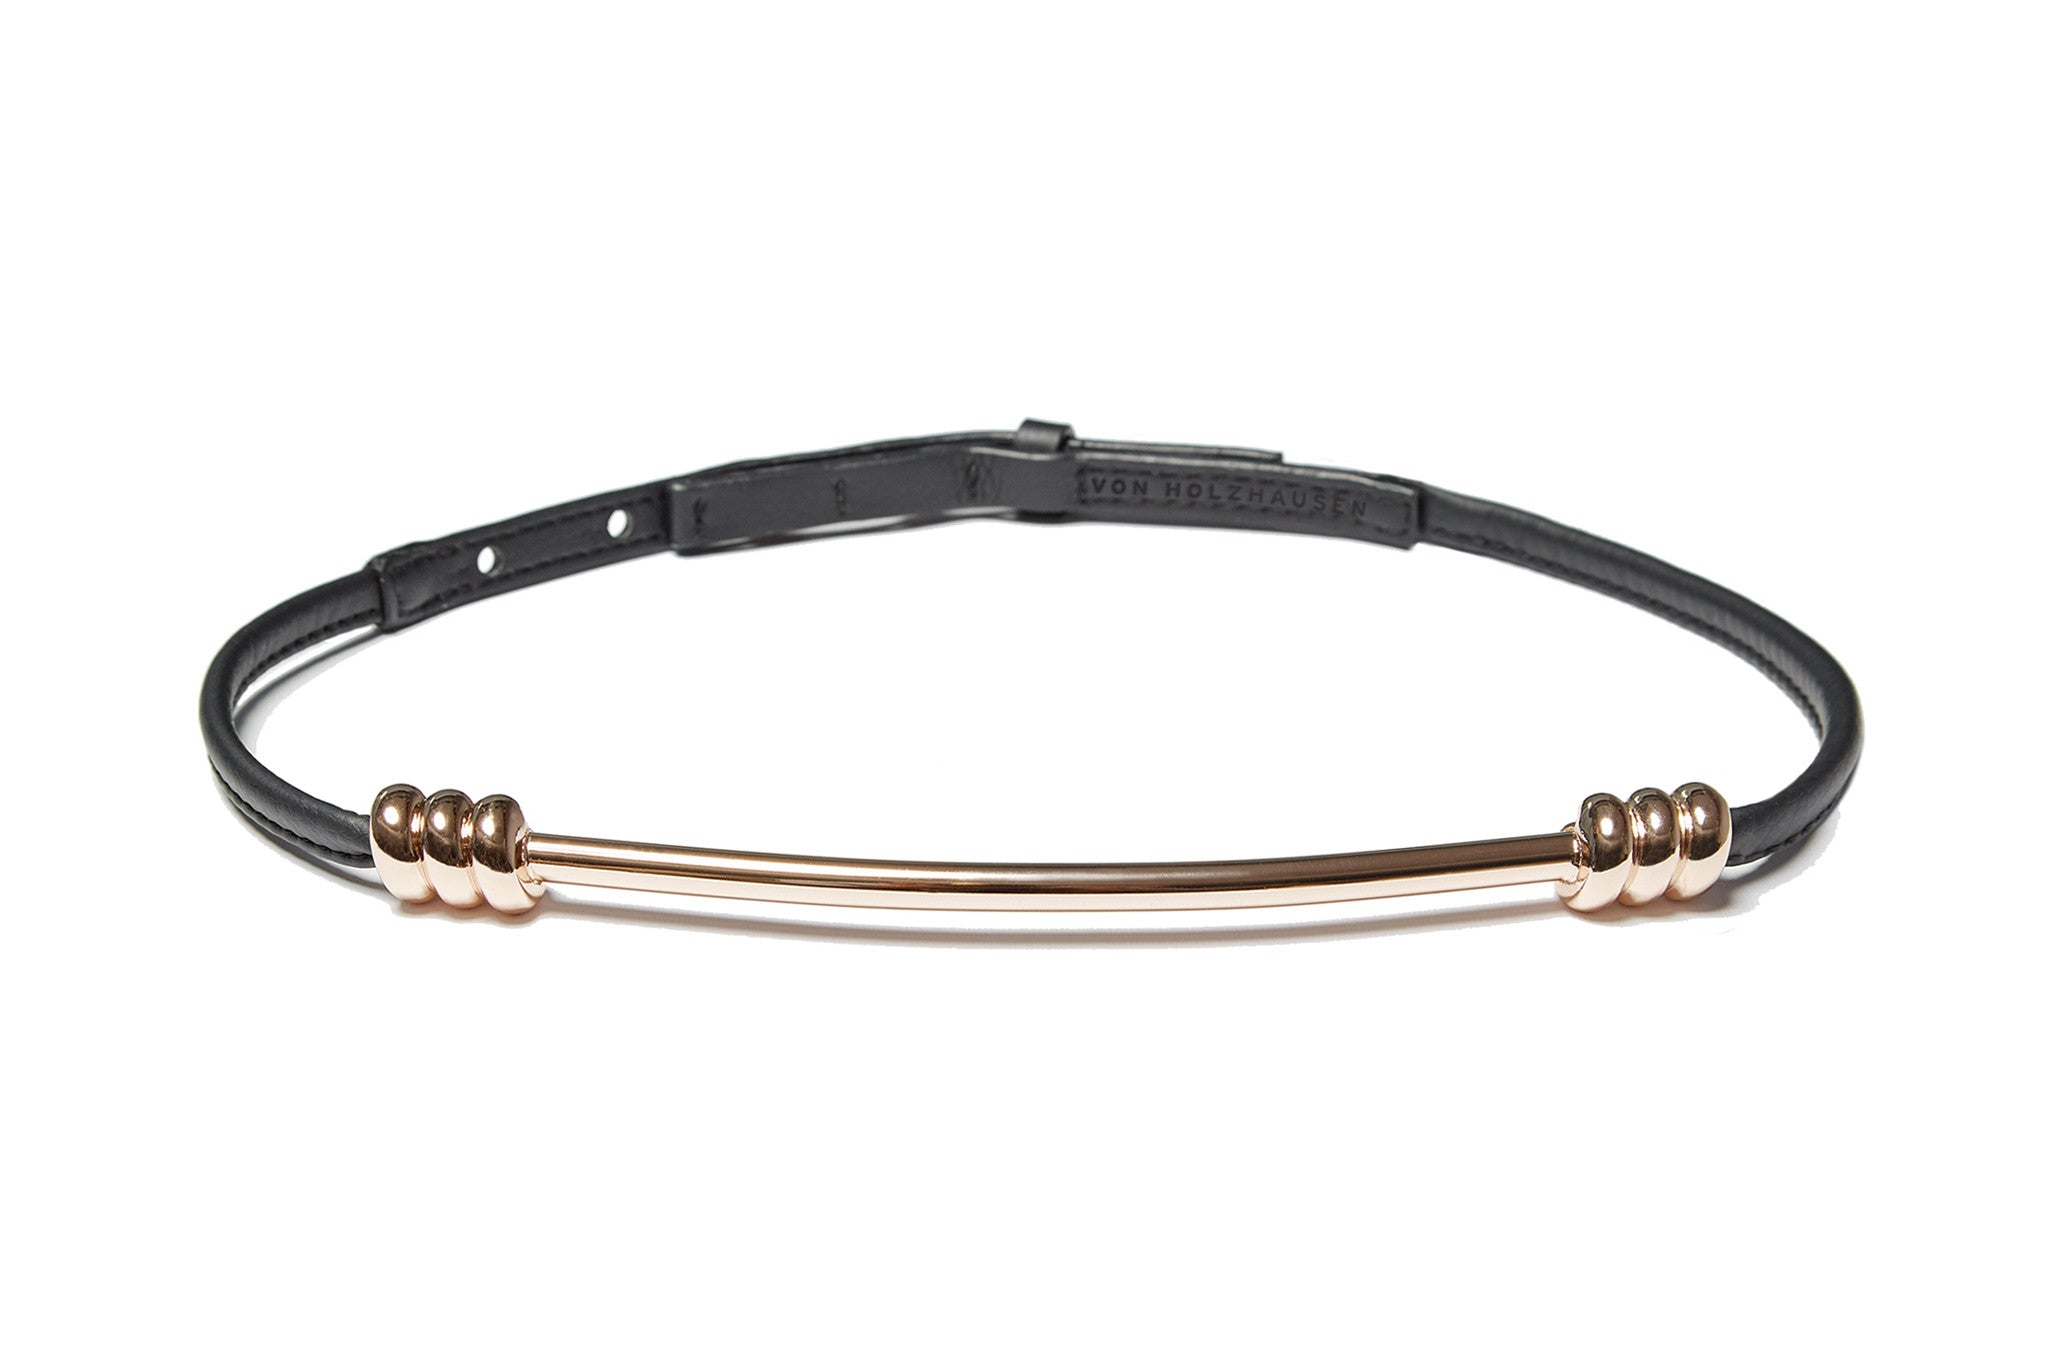 The Metal Belt in Light Gold & Black Technik-Leather